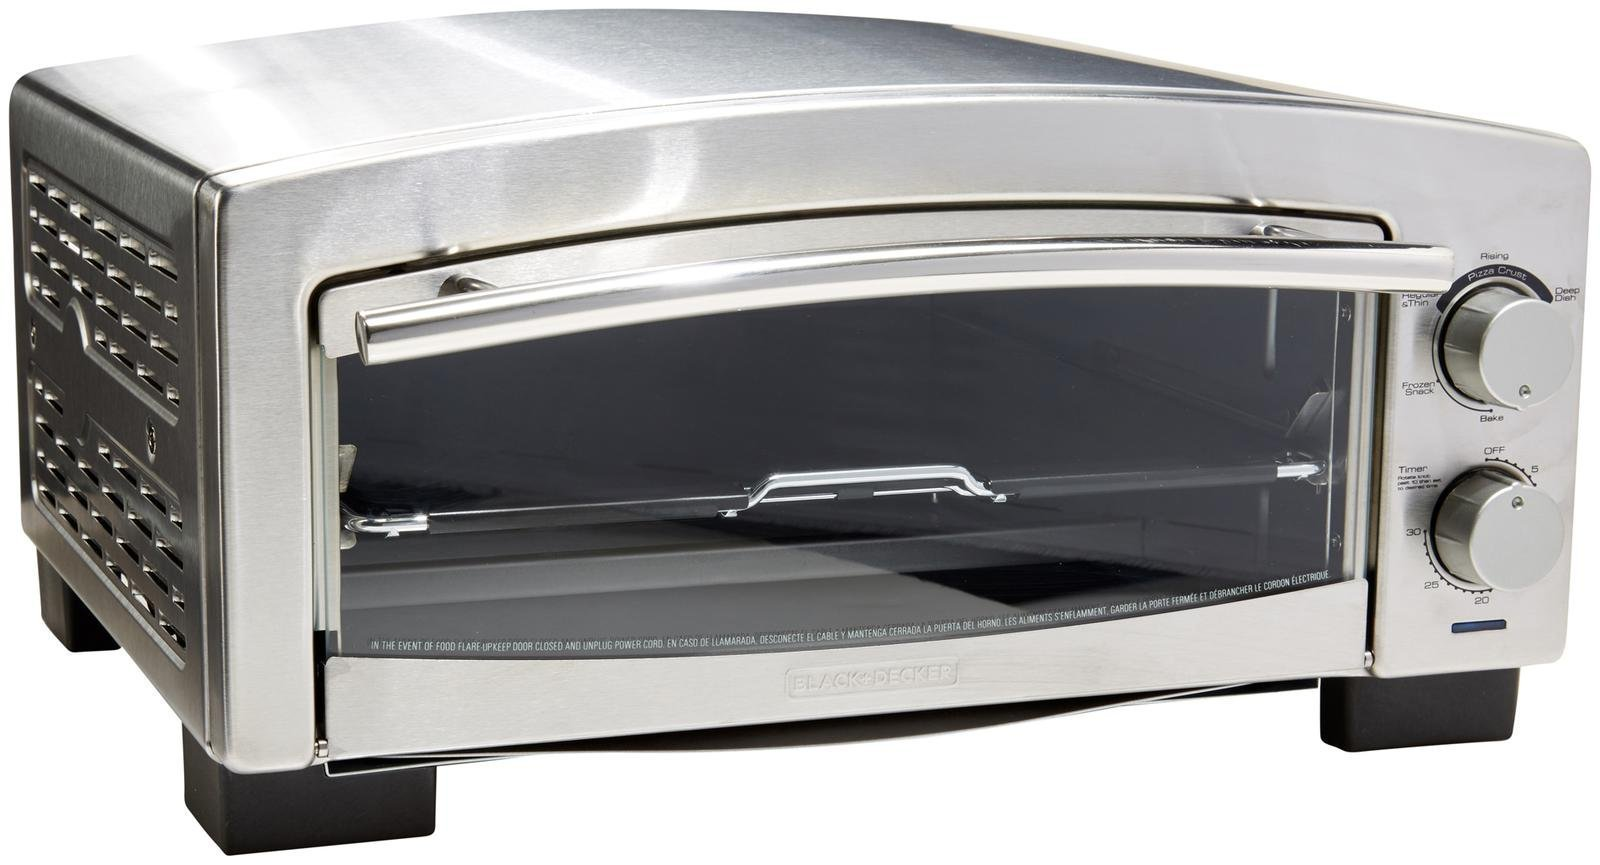 BLACK+DECKER P300S 5-Minute Snack Maker, Pizza Oven, Toaster Oven, Stainless Steel